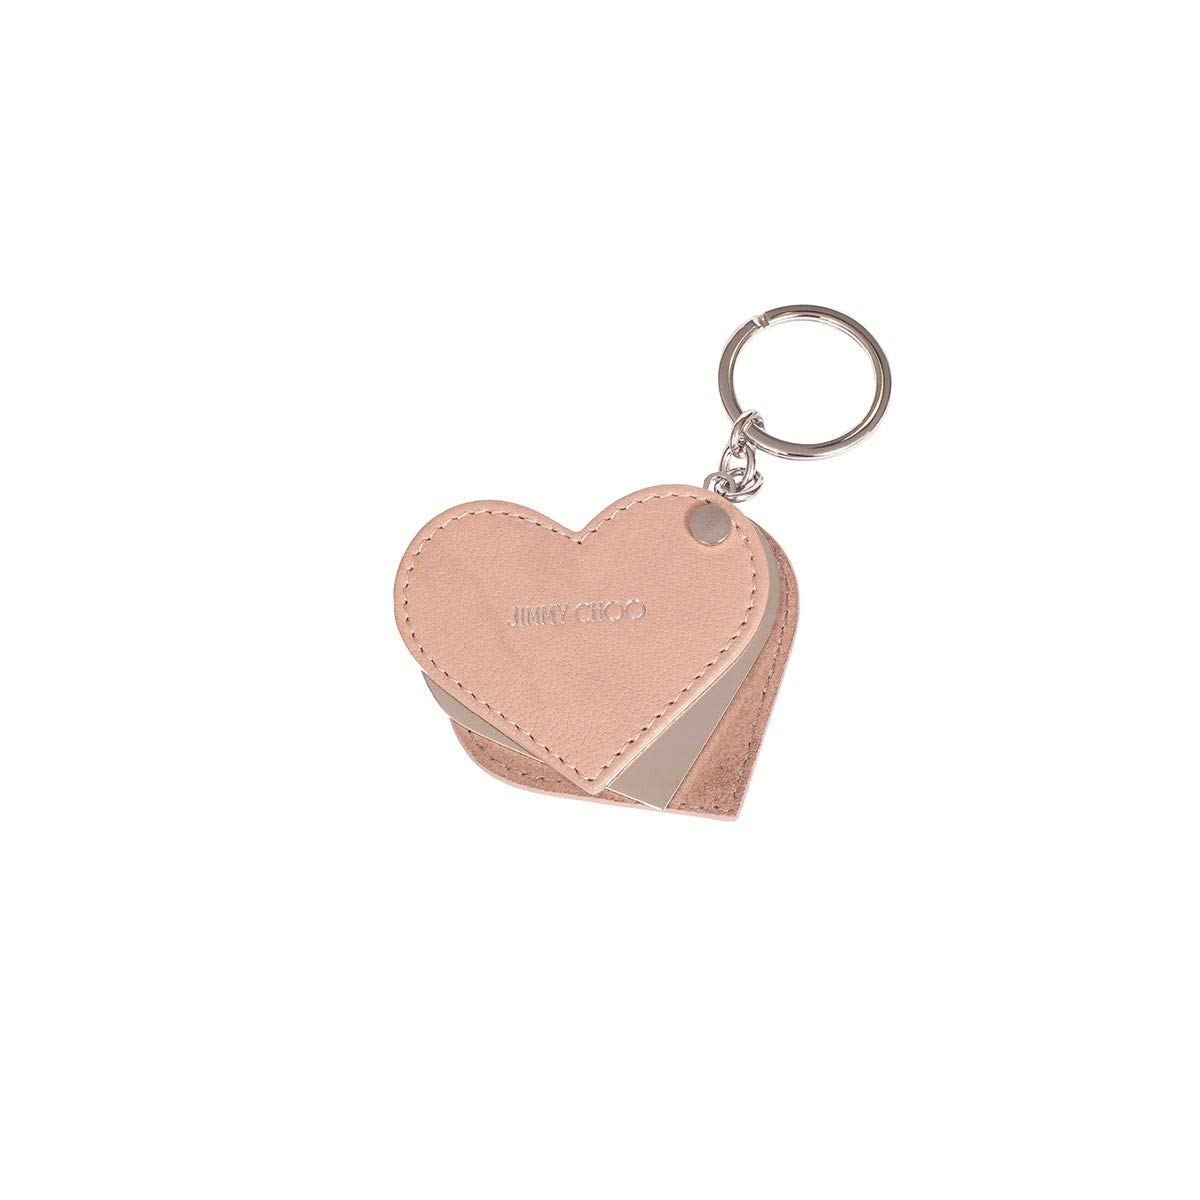 Jimmy Choo Women's Cecilelmt Pink Leather Key Chain